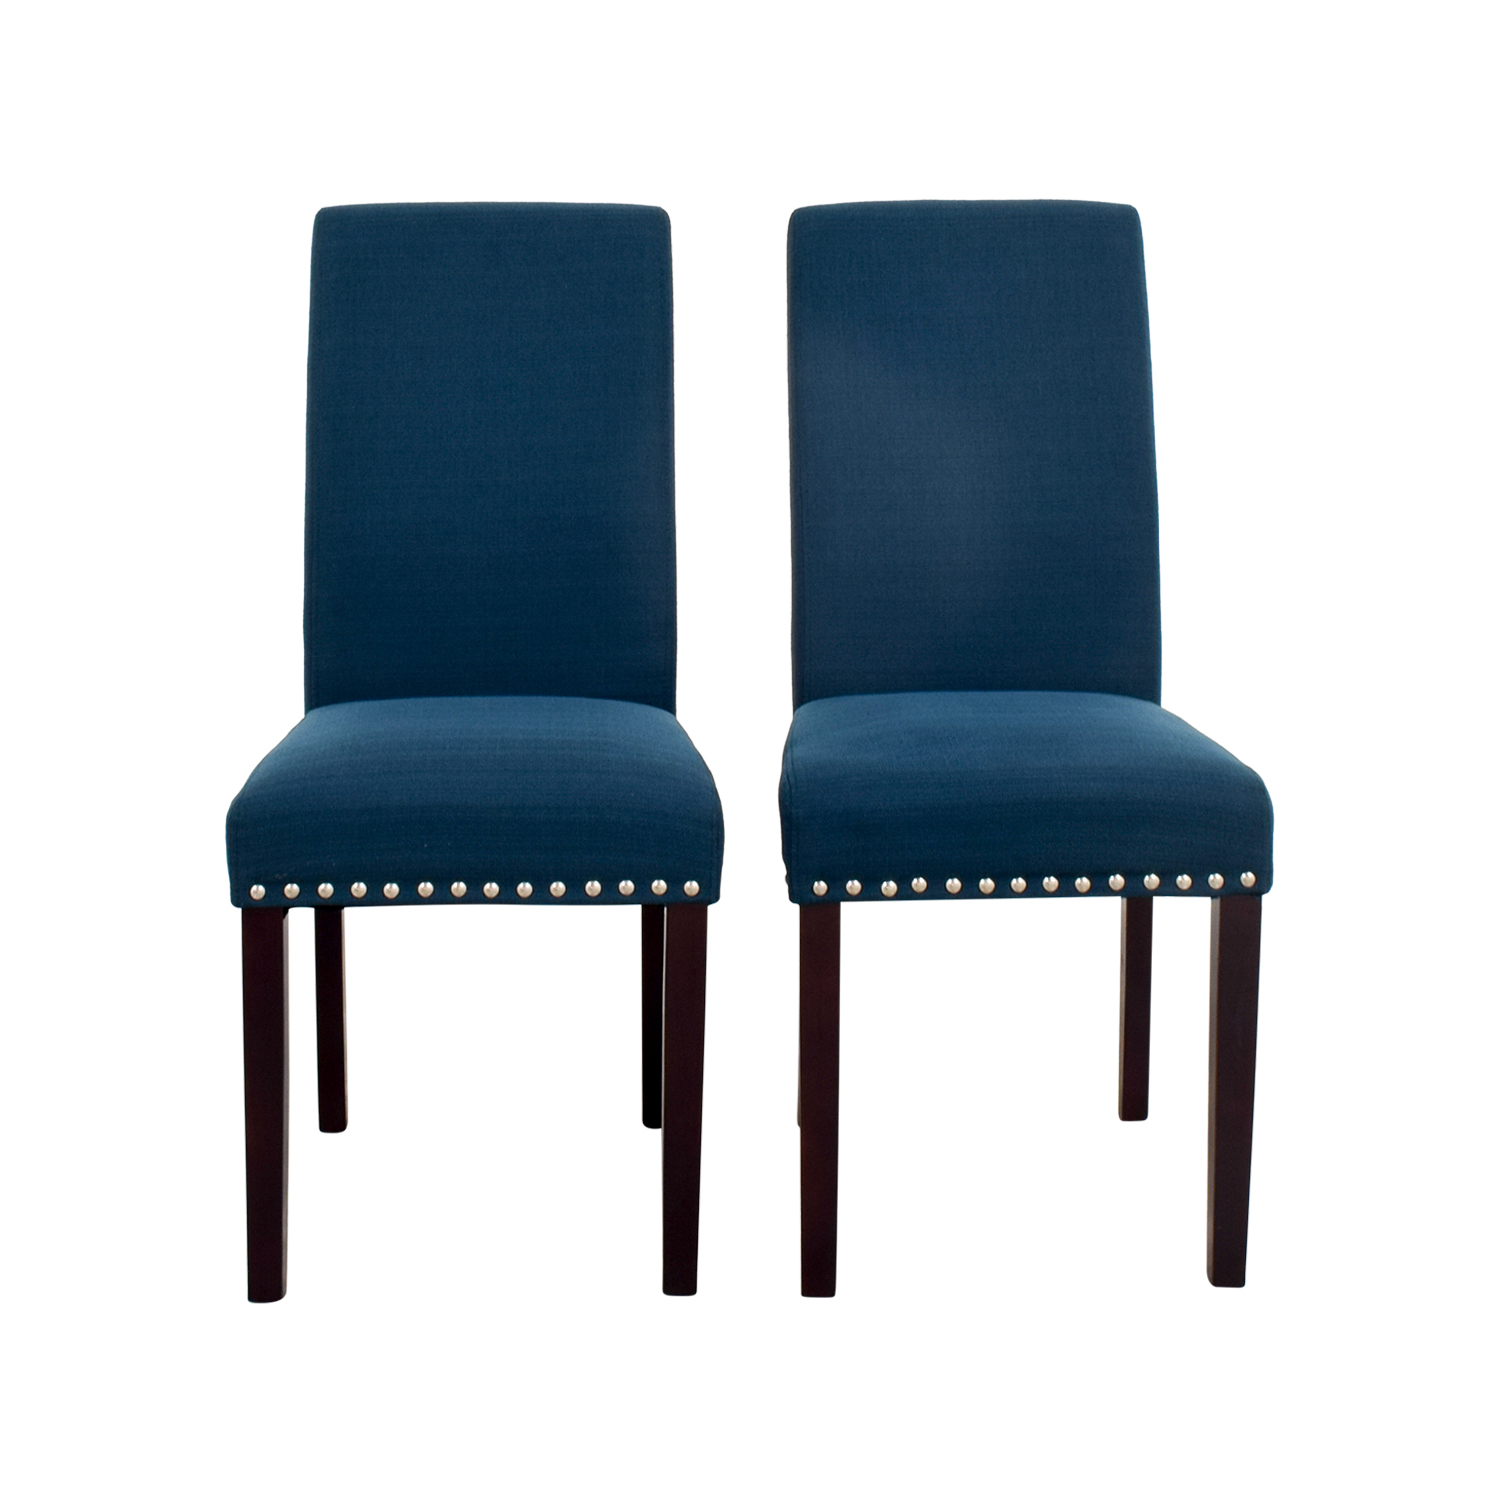 modway modway madrid nail head teal dining chairs for sale